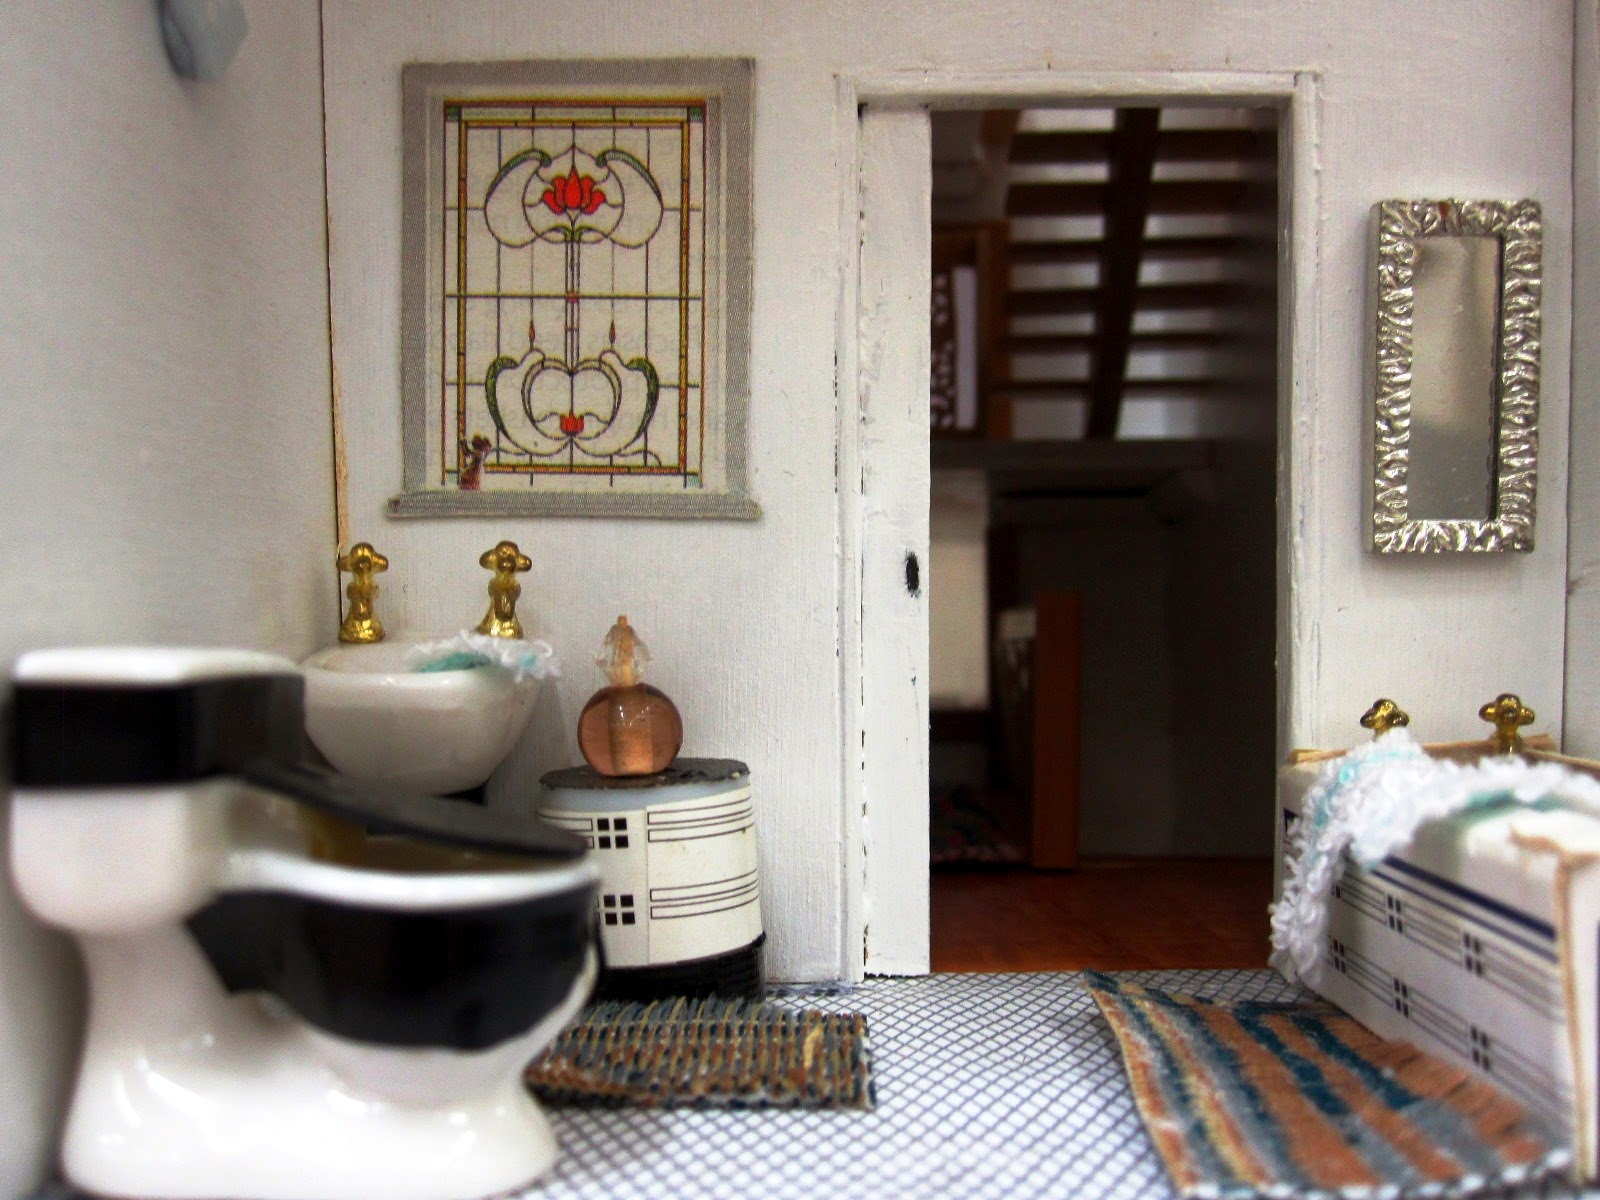 Bathroom of an Art Deco moderne-style dolls house by Anne Reid